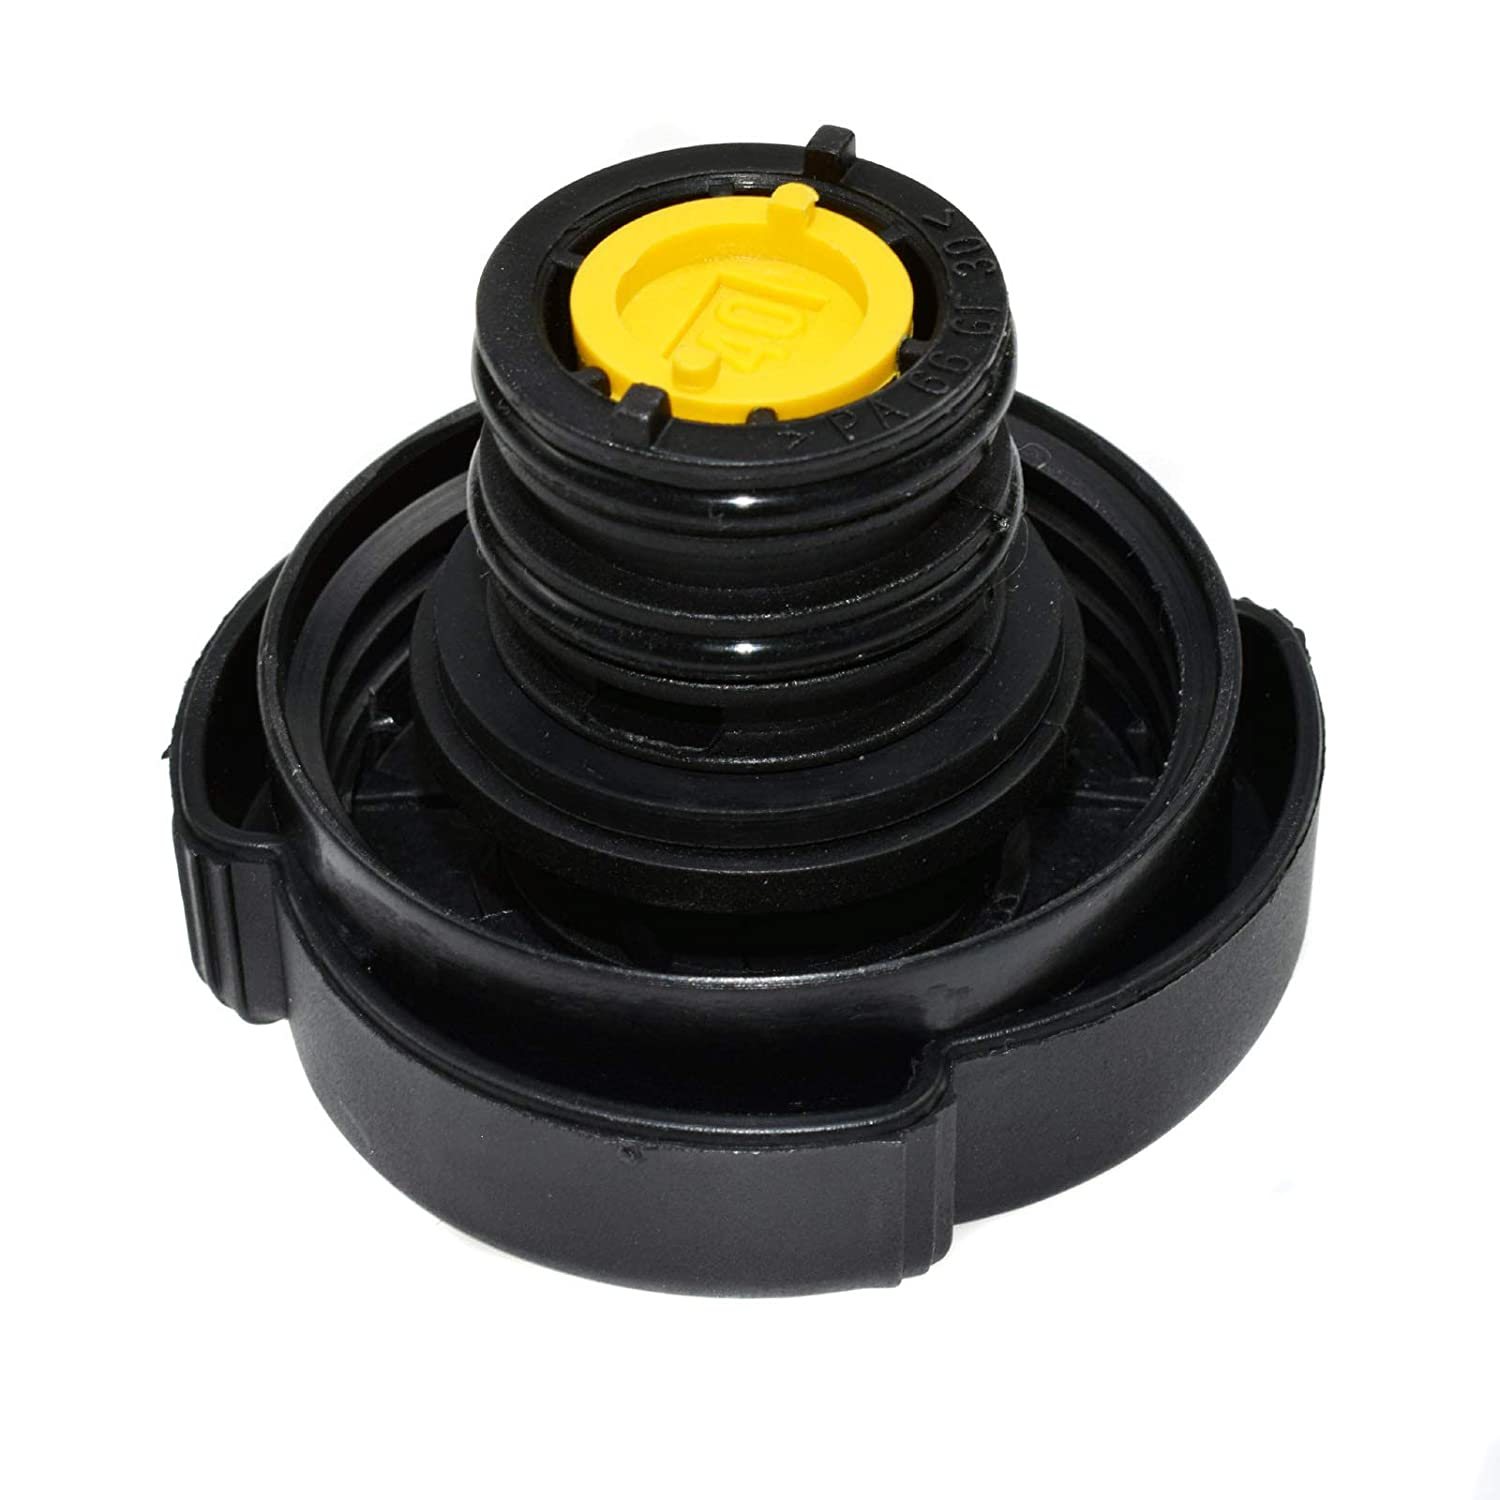 Reservoir Expansion Overflow Tank Cap 17111742232 NEW For 325i 318i Discovery 325iX 535i 1986 1987 1988 1989 1990 1991 1992 1993 1994 1995 1996 1997 1998 1999 2000 2001 2002 2003 2004 2005